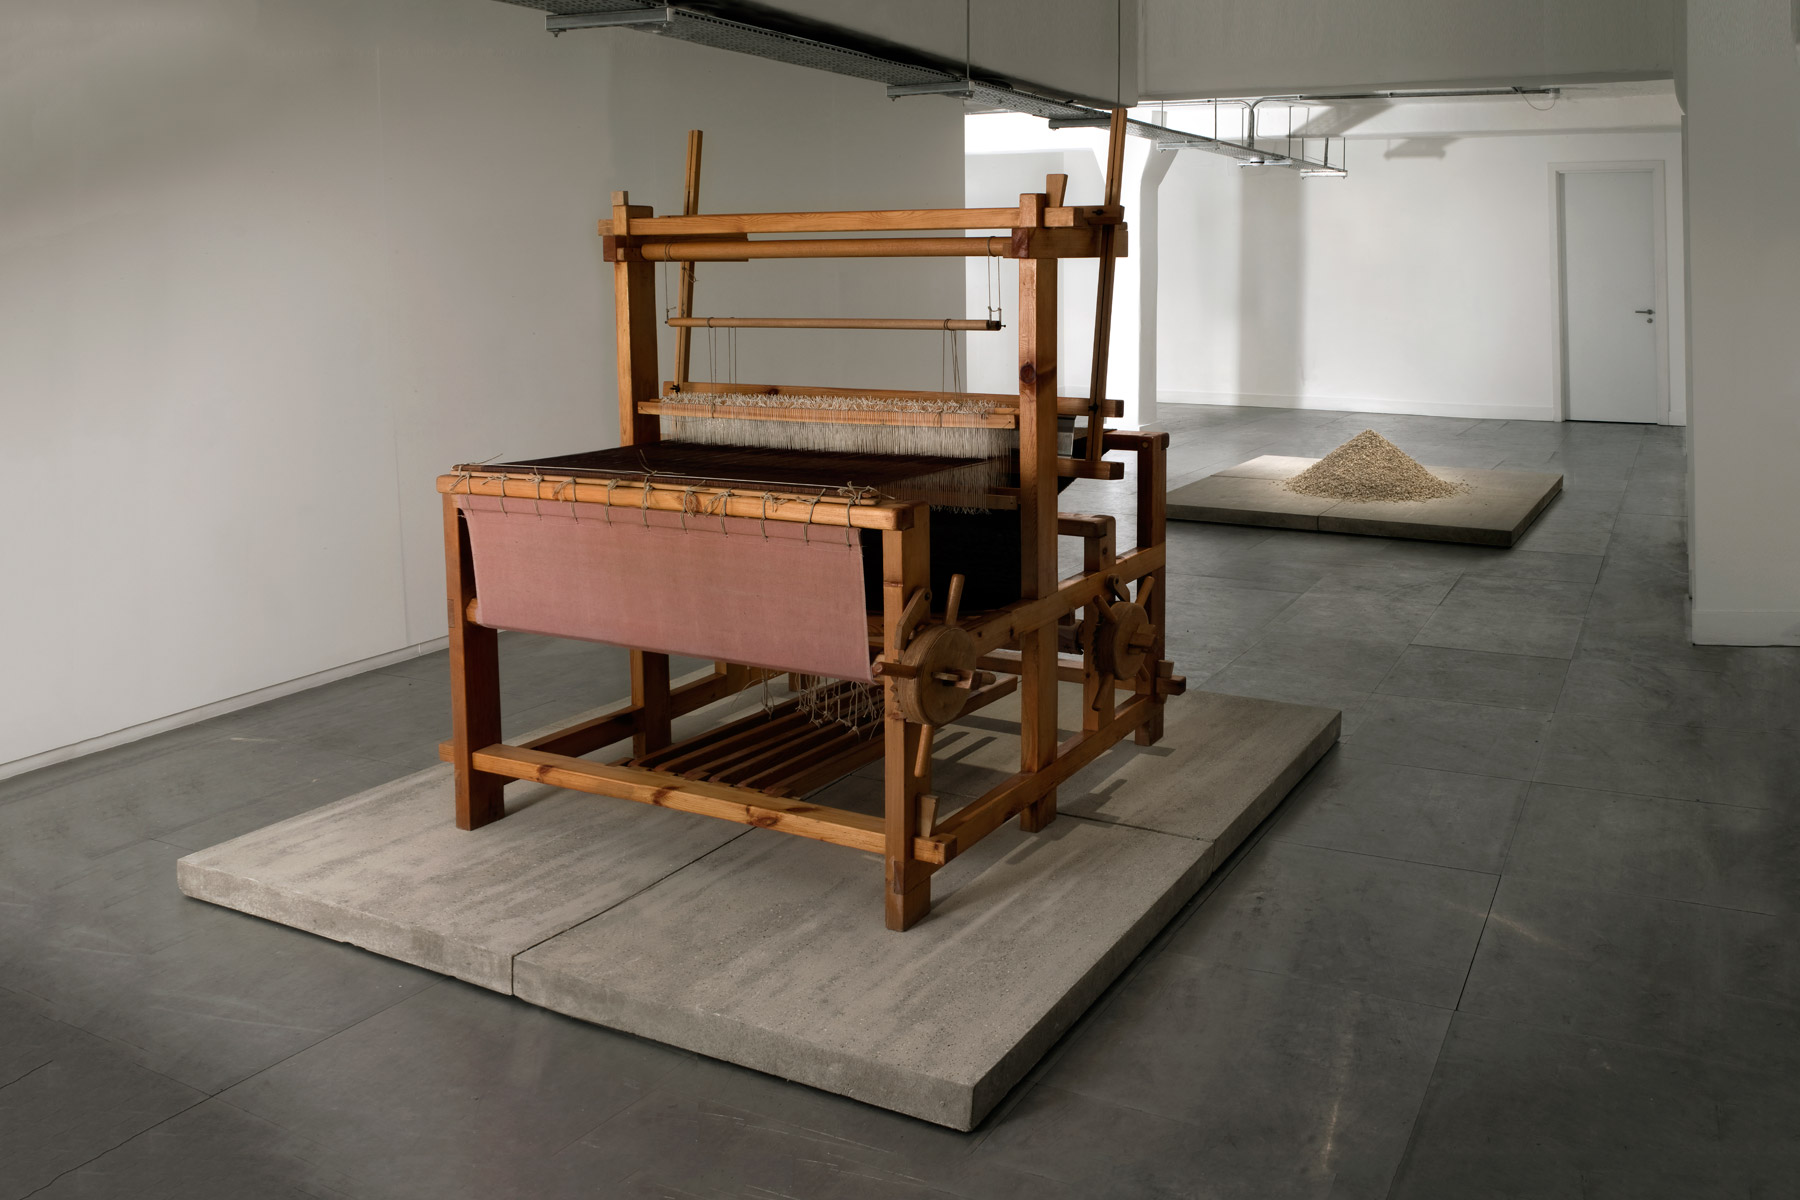 Alastair Mackie|Untitled (+/-)|2009|mouse|fur|fabric|loom|sculpture